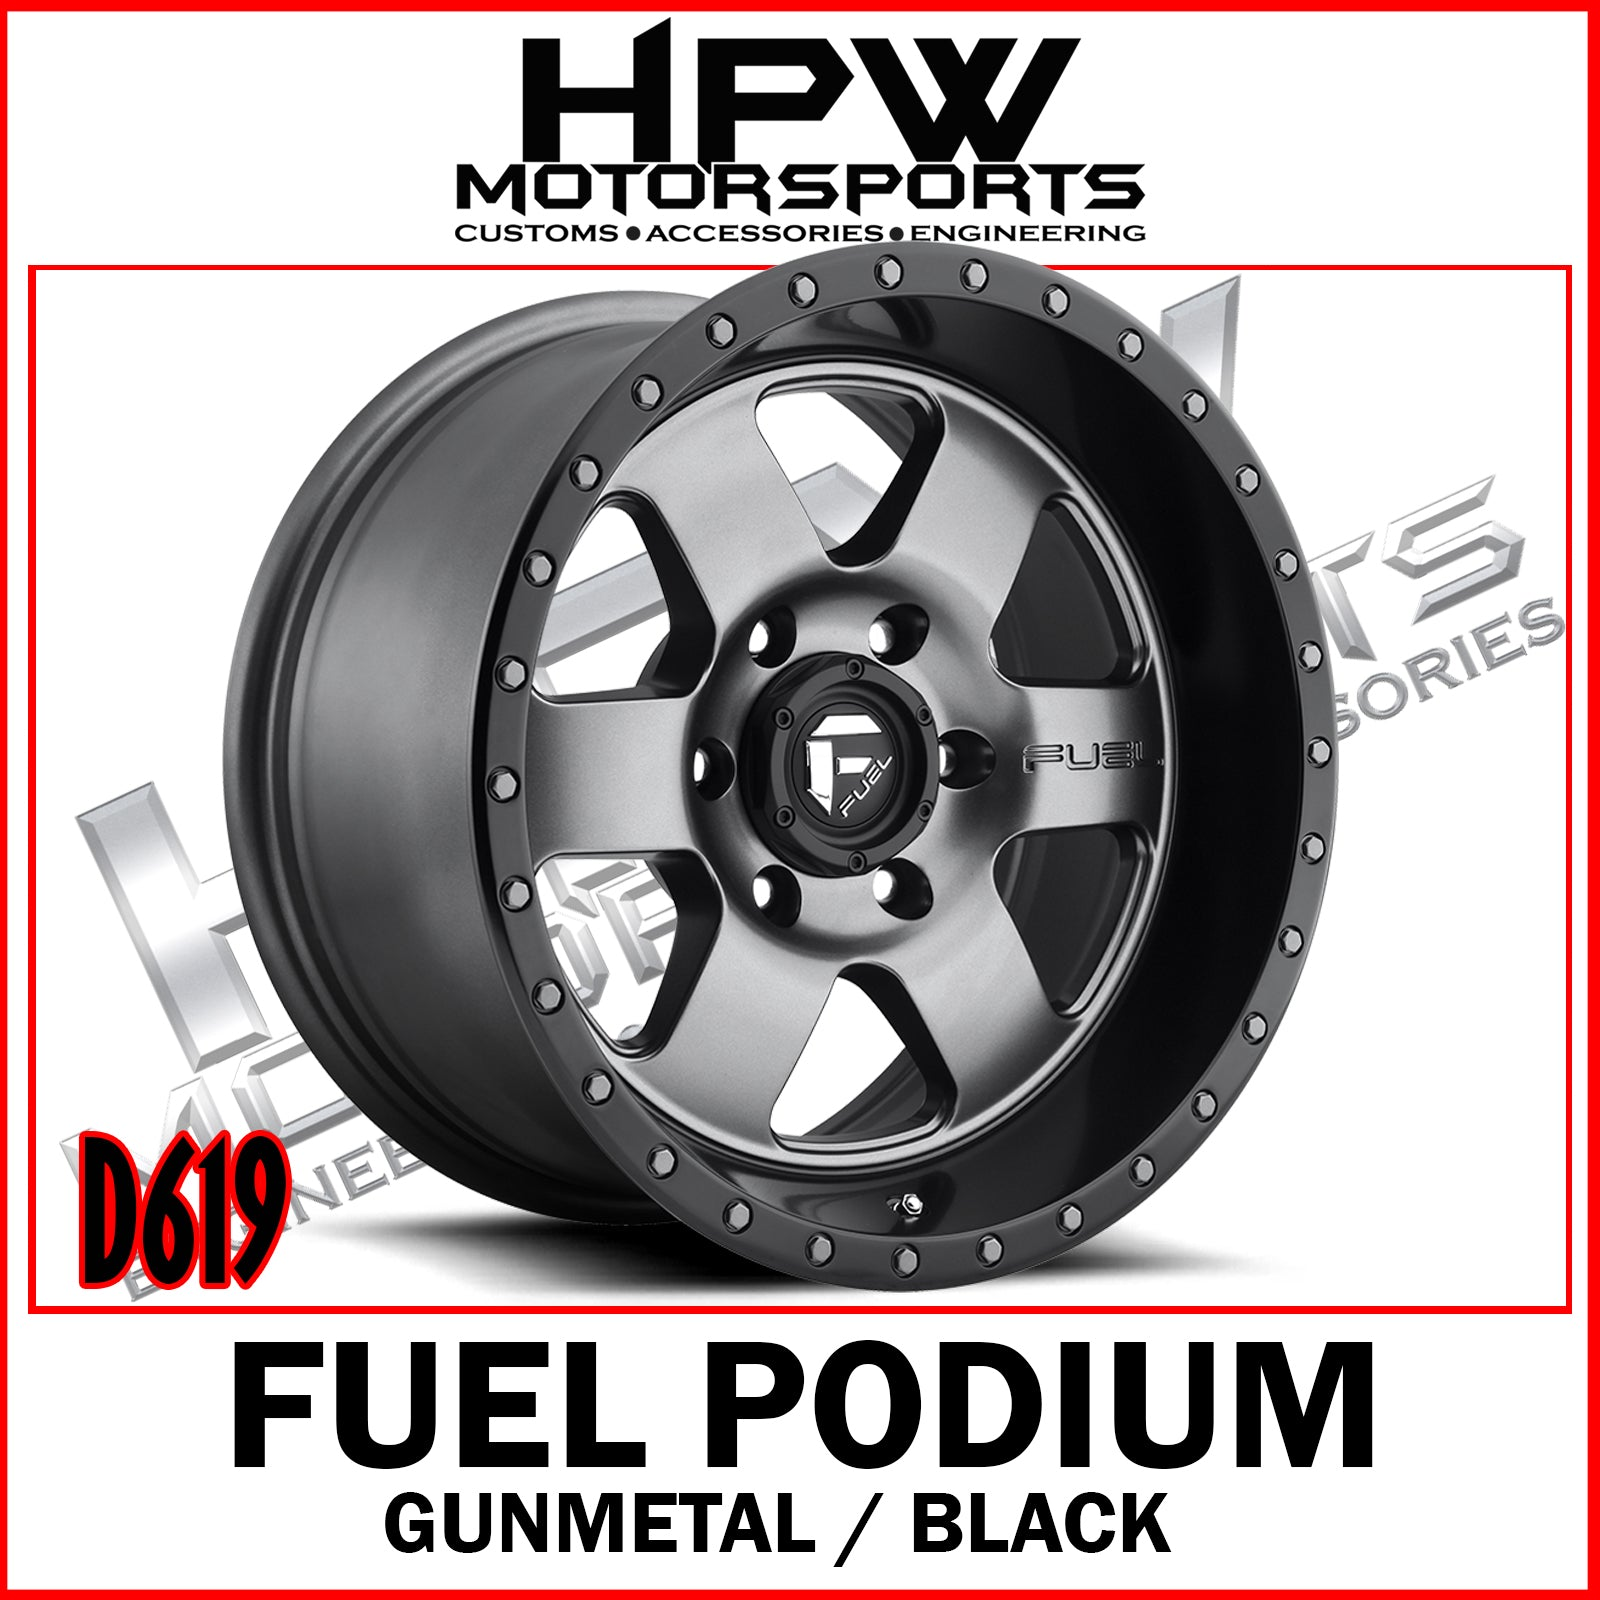 D619 FUEL PODIUM - GUNMETAL & BLACK - Set of 4